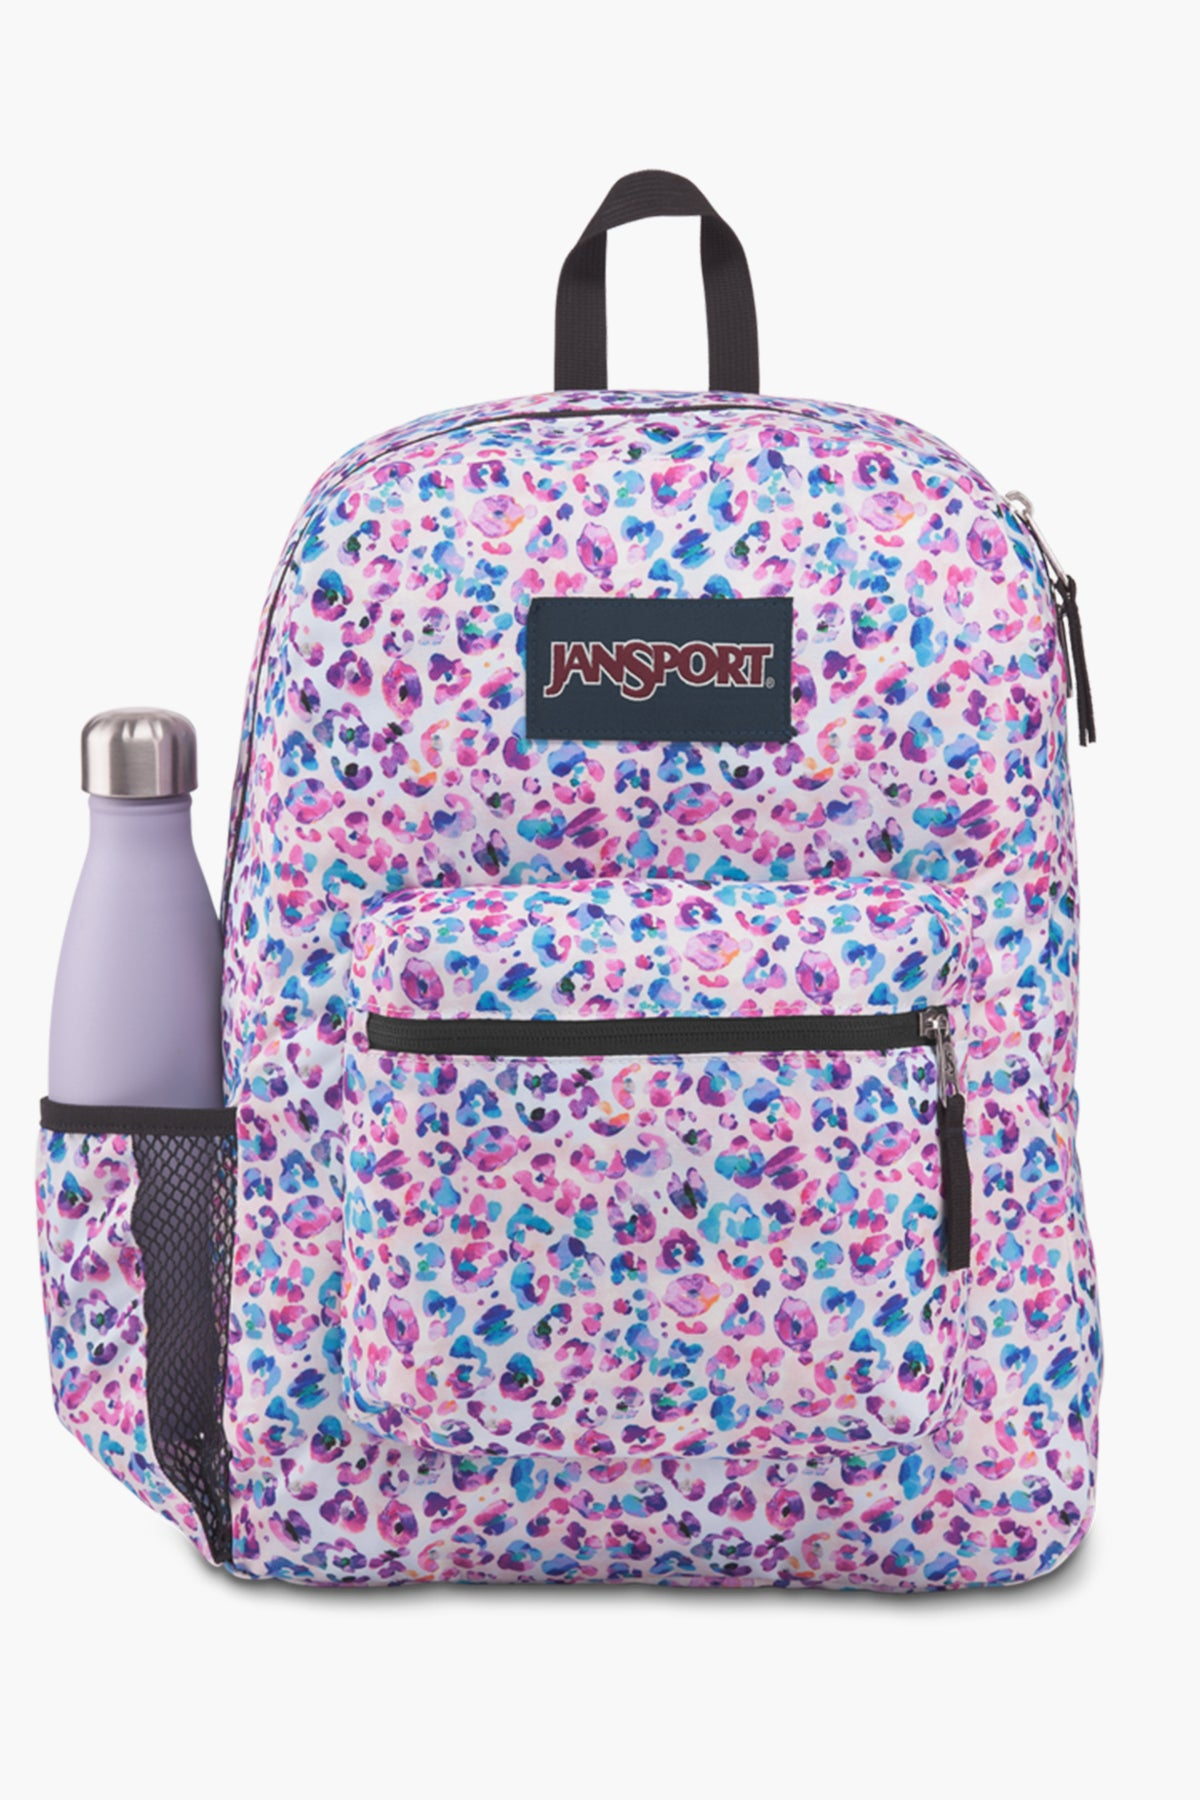 JanSport Cross Town Kids Backpack - Leopard Dots